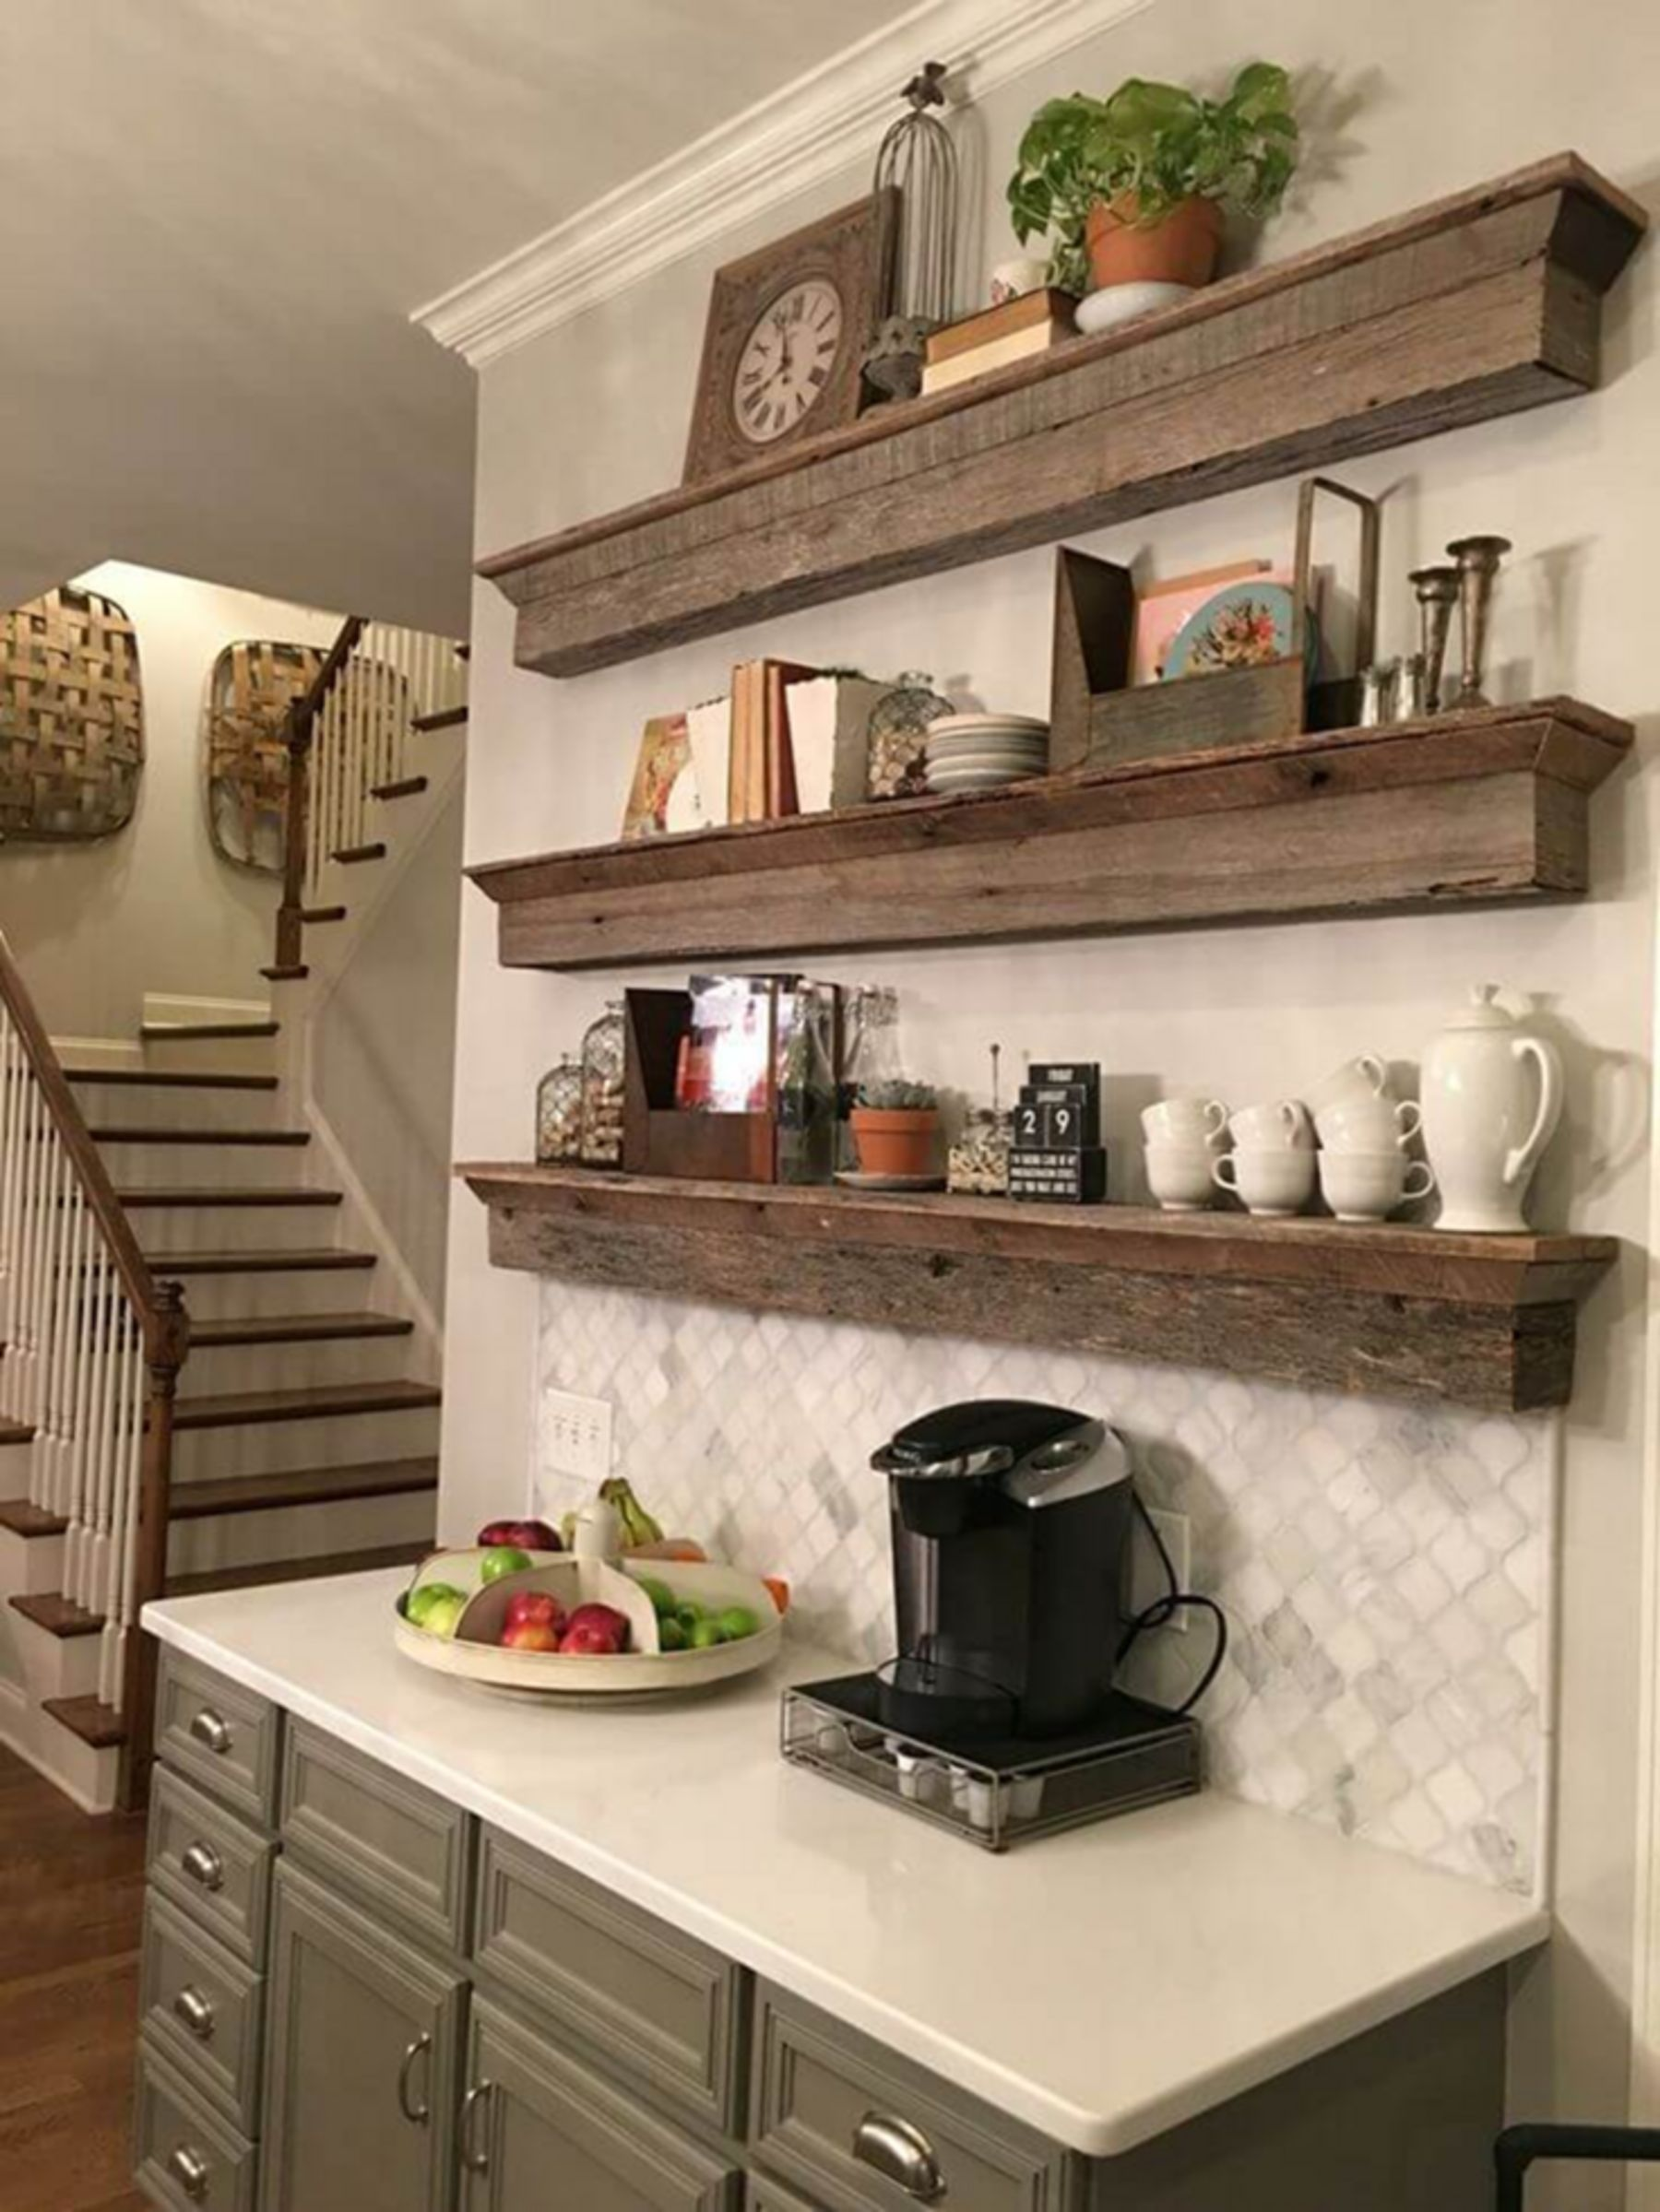 10 Popular Kitchen Wood Shelf Design Ideas To Make Your Cooking Easy Moolton In 2020 Floating Shelves Kitchen Coffee Bar Home Wood Shelves Kitchen